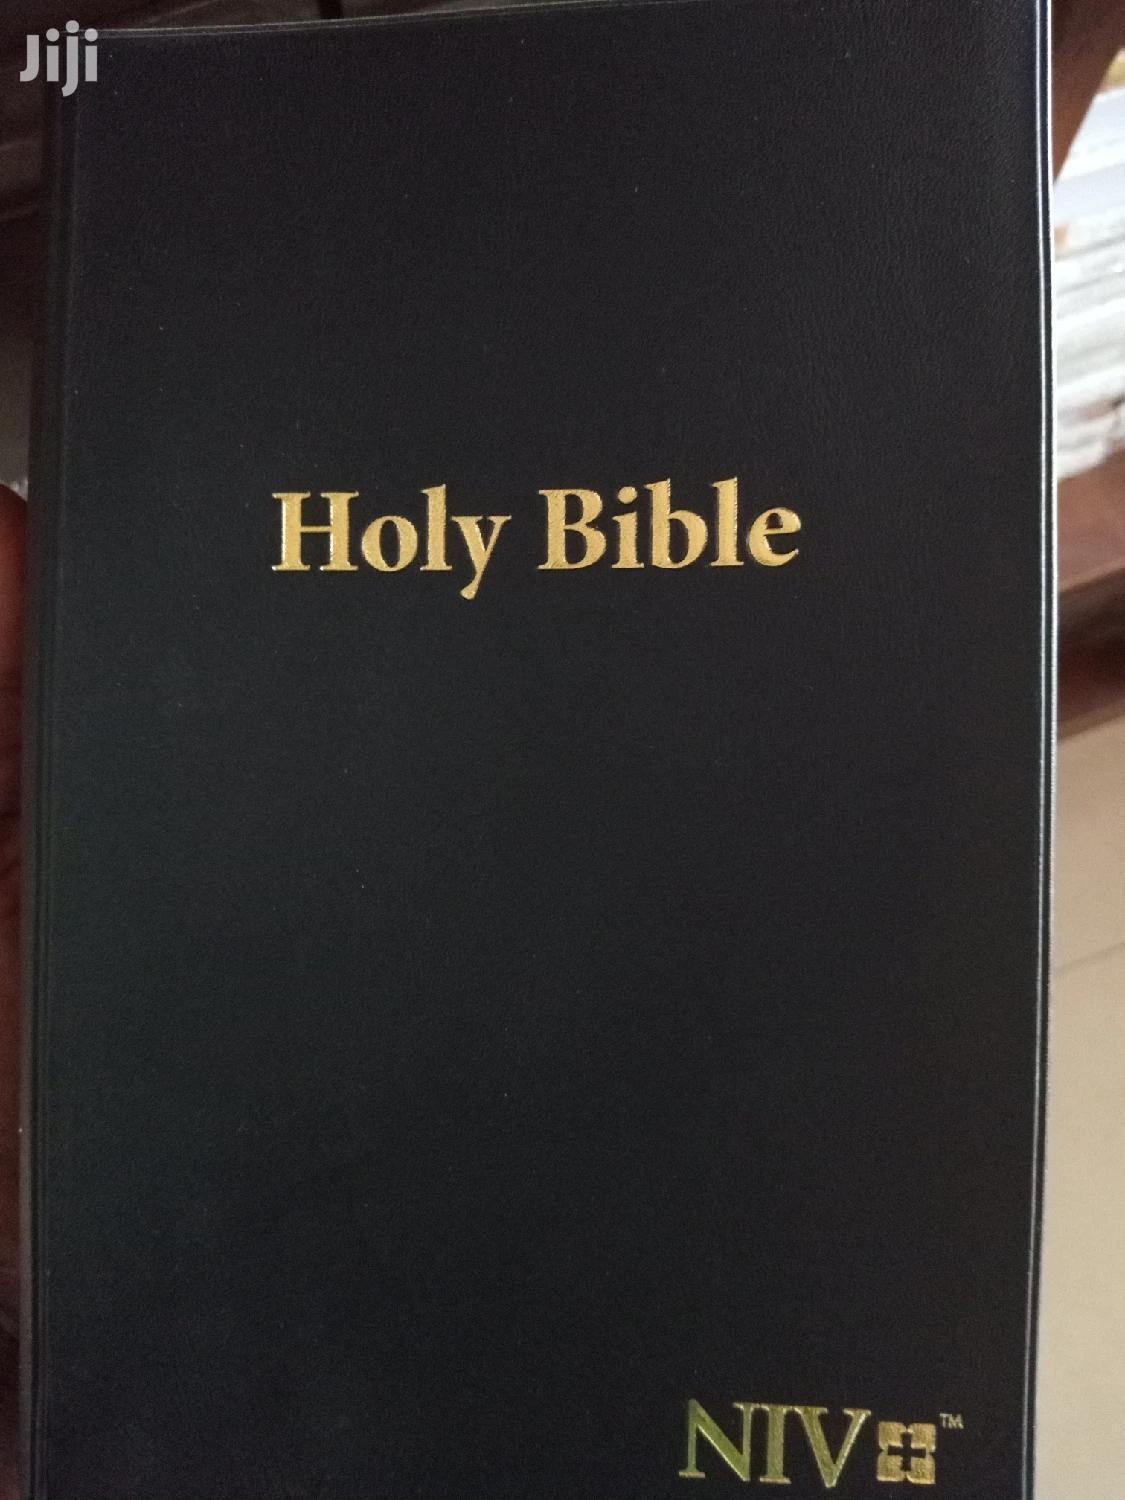 Holy Bible (Niv Big)